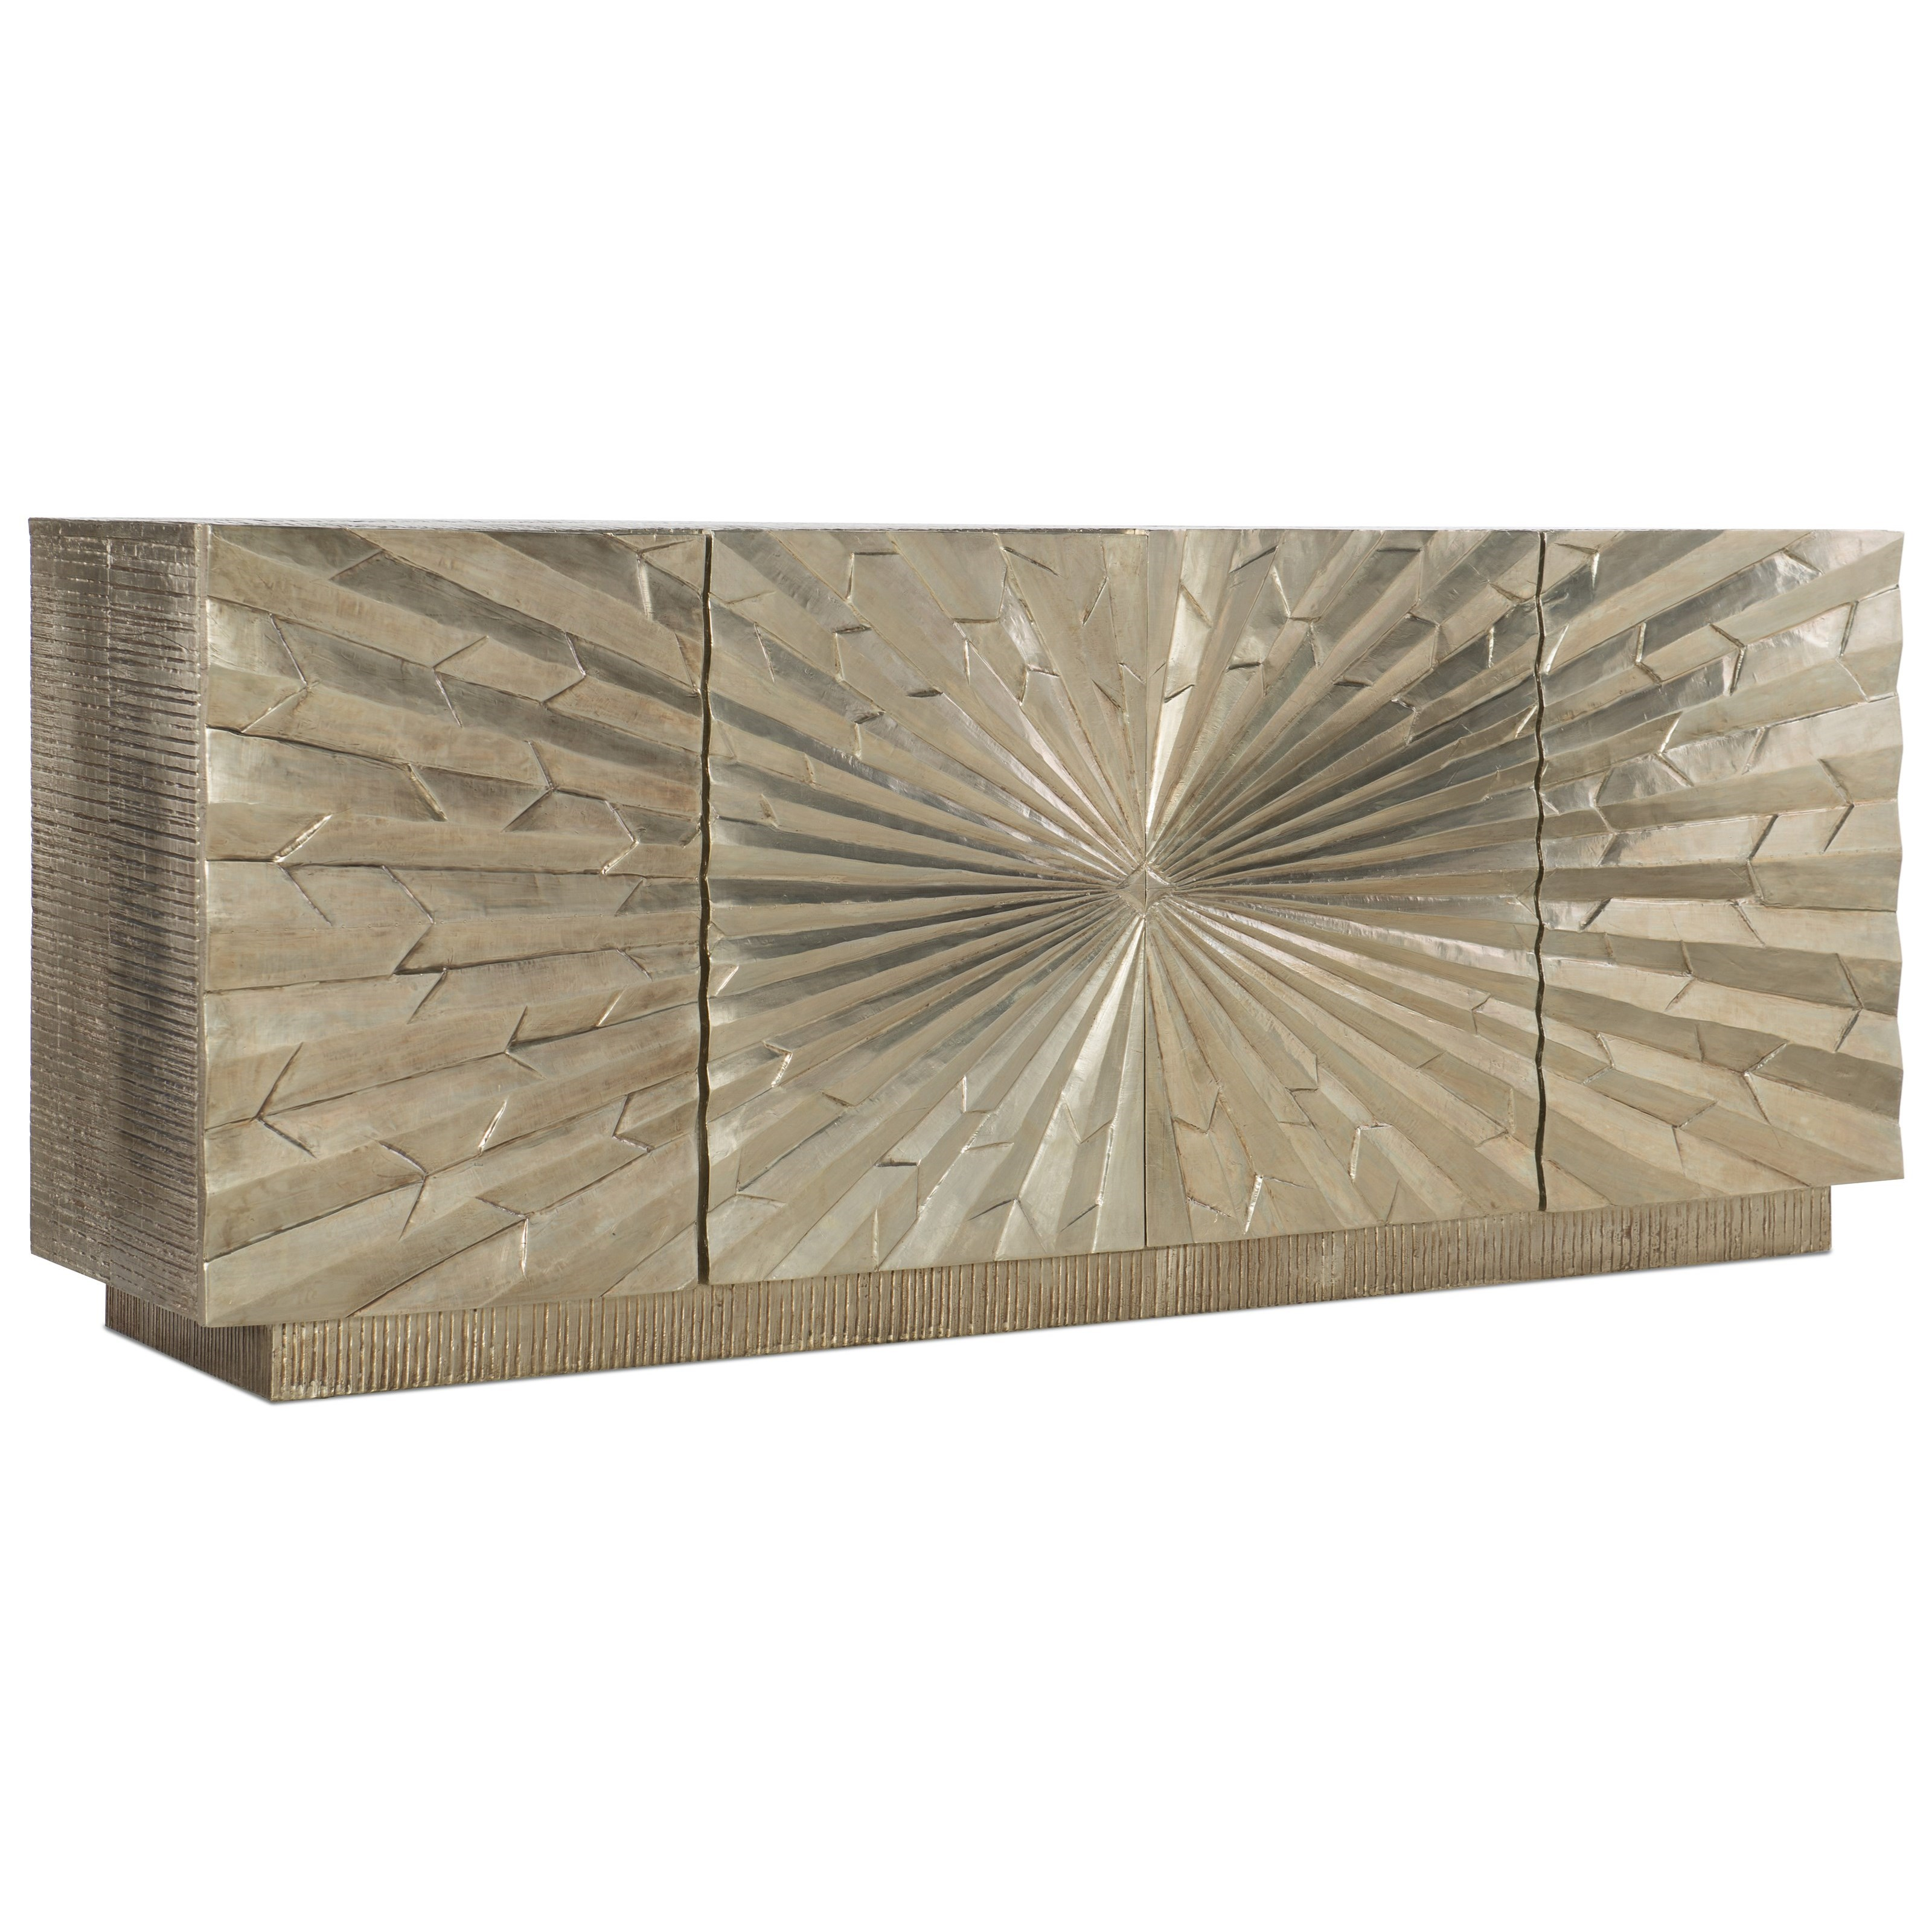 "5667-55 Big Bang 78"" Entertainment Console by Hooker Furniture at Stuckey Furniture"